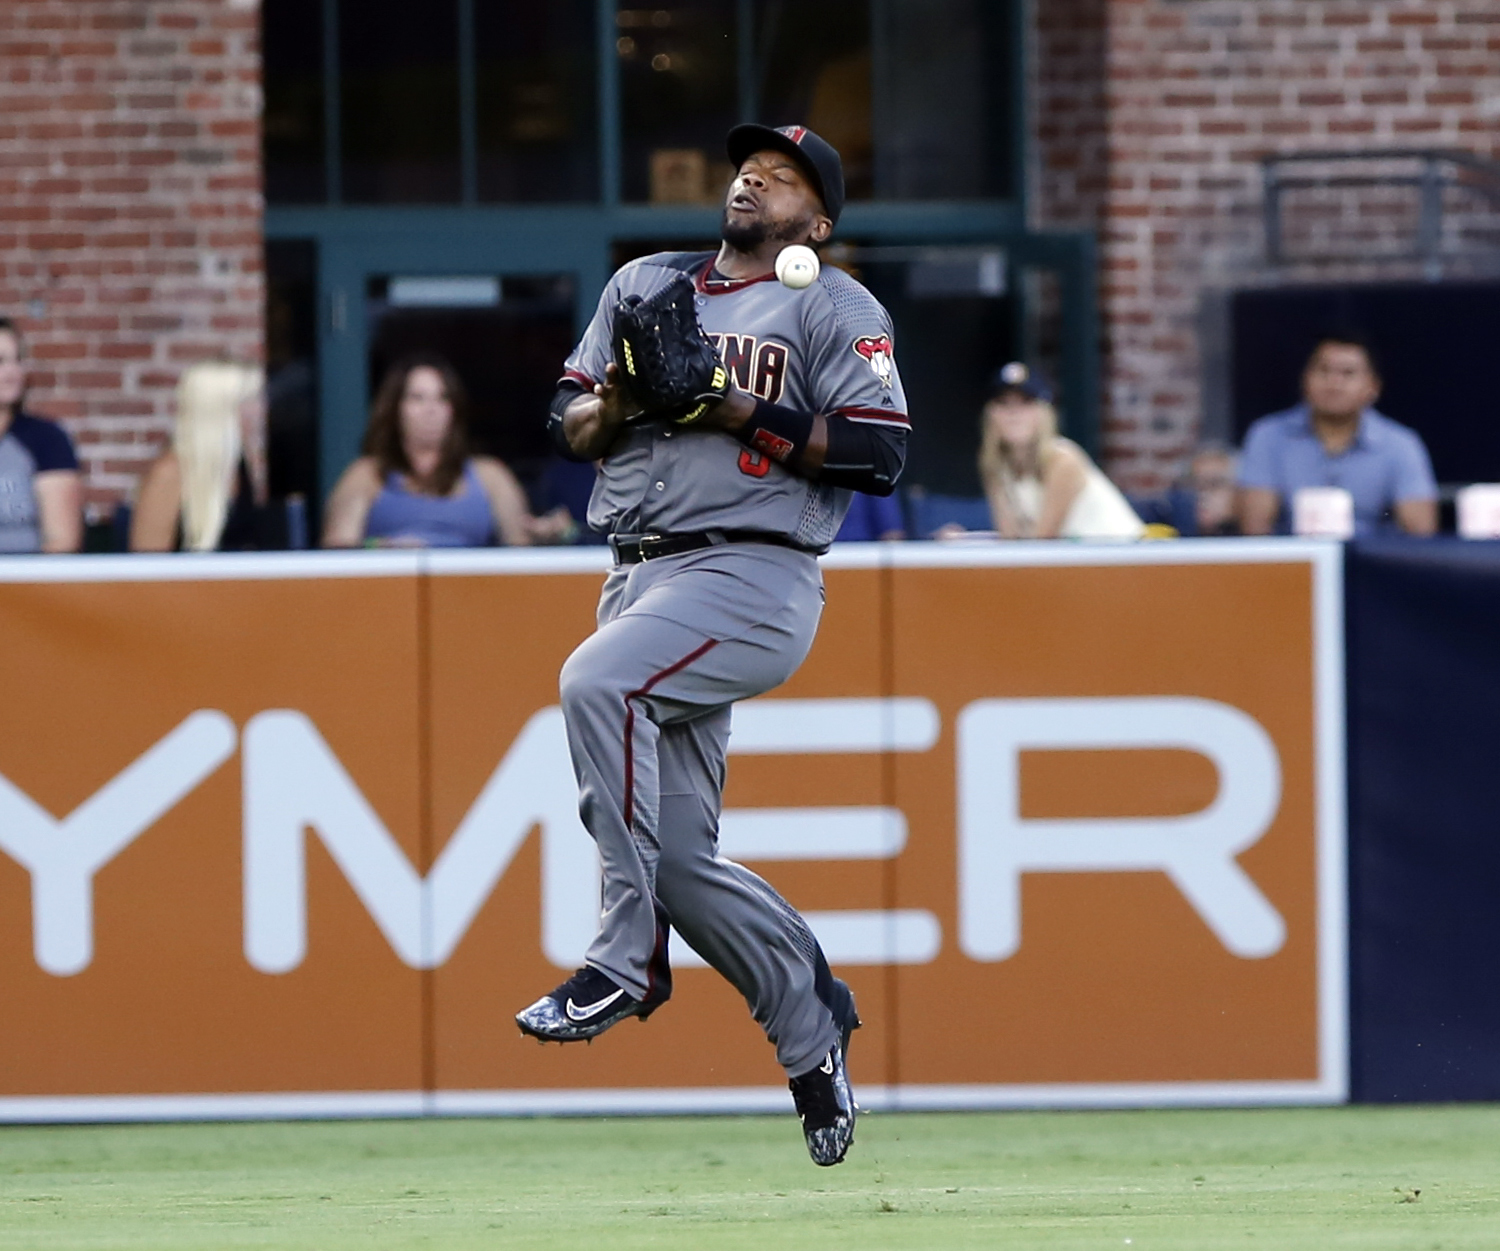 Arizona Diamondbacks left fielder Ricky Weeks Jr. bobbles this pop fly by San Diego Padres' Ryan Schimpf during the fourth inning in a baseball game, Saturday, Aug. 20, 2016, in San Diego. Schimpf was safe on the fielding error. (AP Photo/Don Boomer)